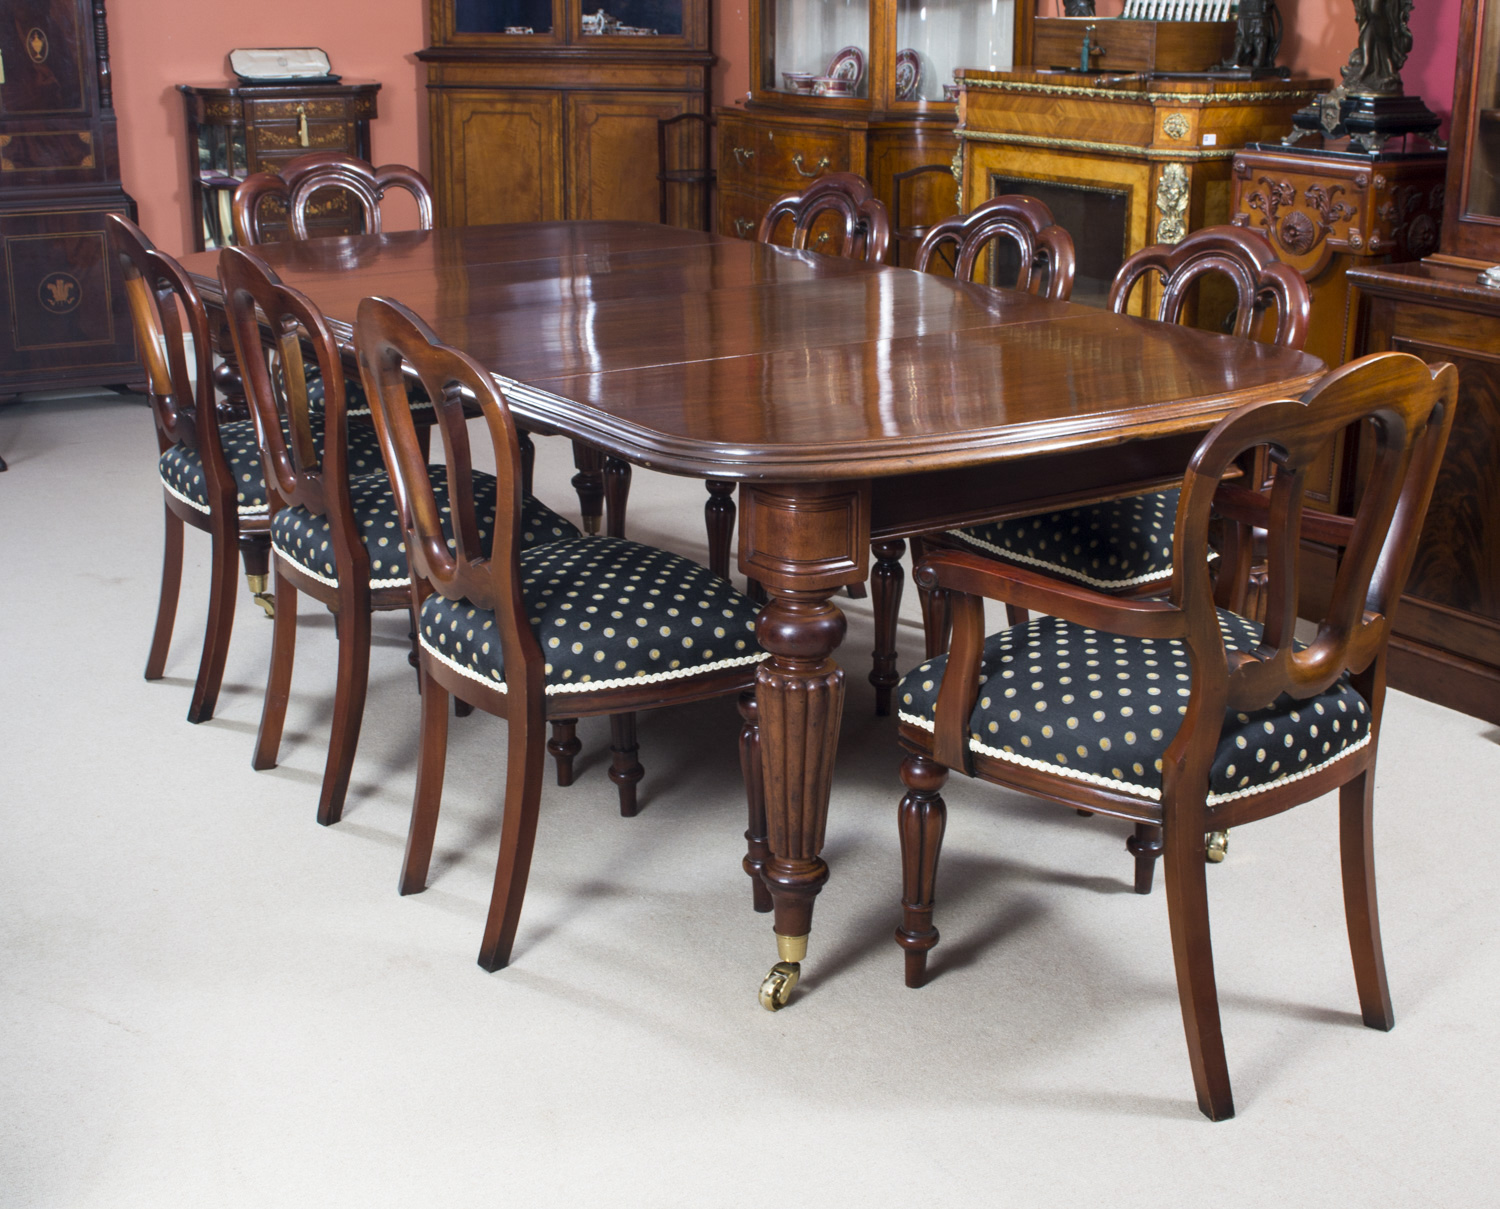 Regent Antiques Dining tables and chairs Table and  : 06608b Antique Victorian Dining Table 8 Admiralty back chairs 23 from www.regentantiques.com size 1500 x 1209 jpeg 608kB